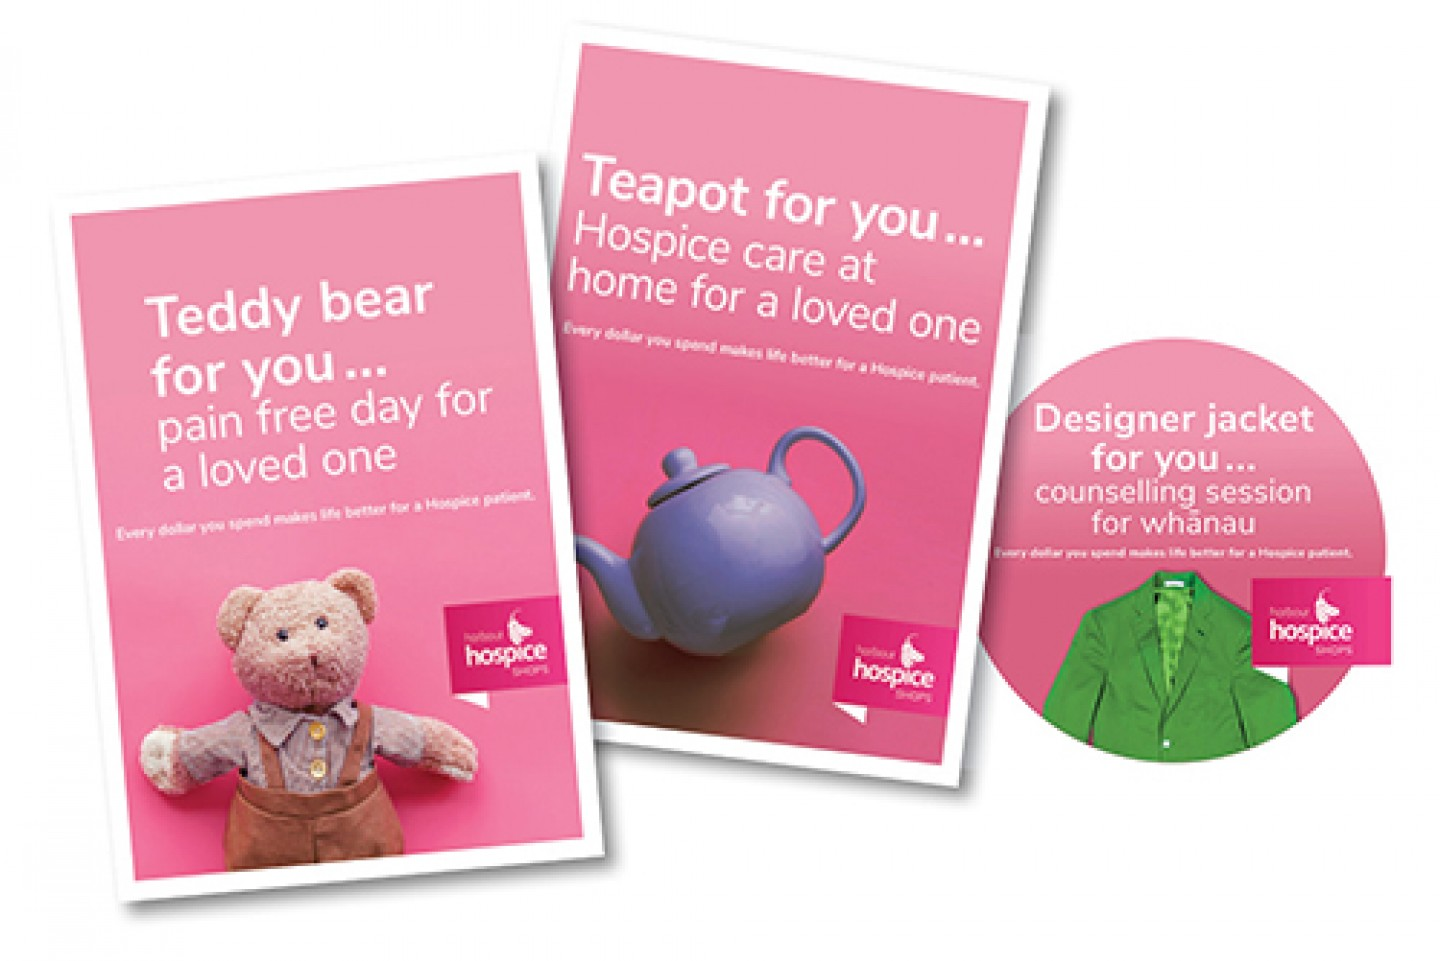 For You Hospice Shops campaign